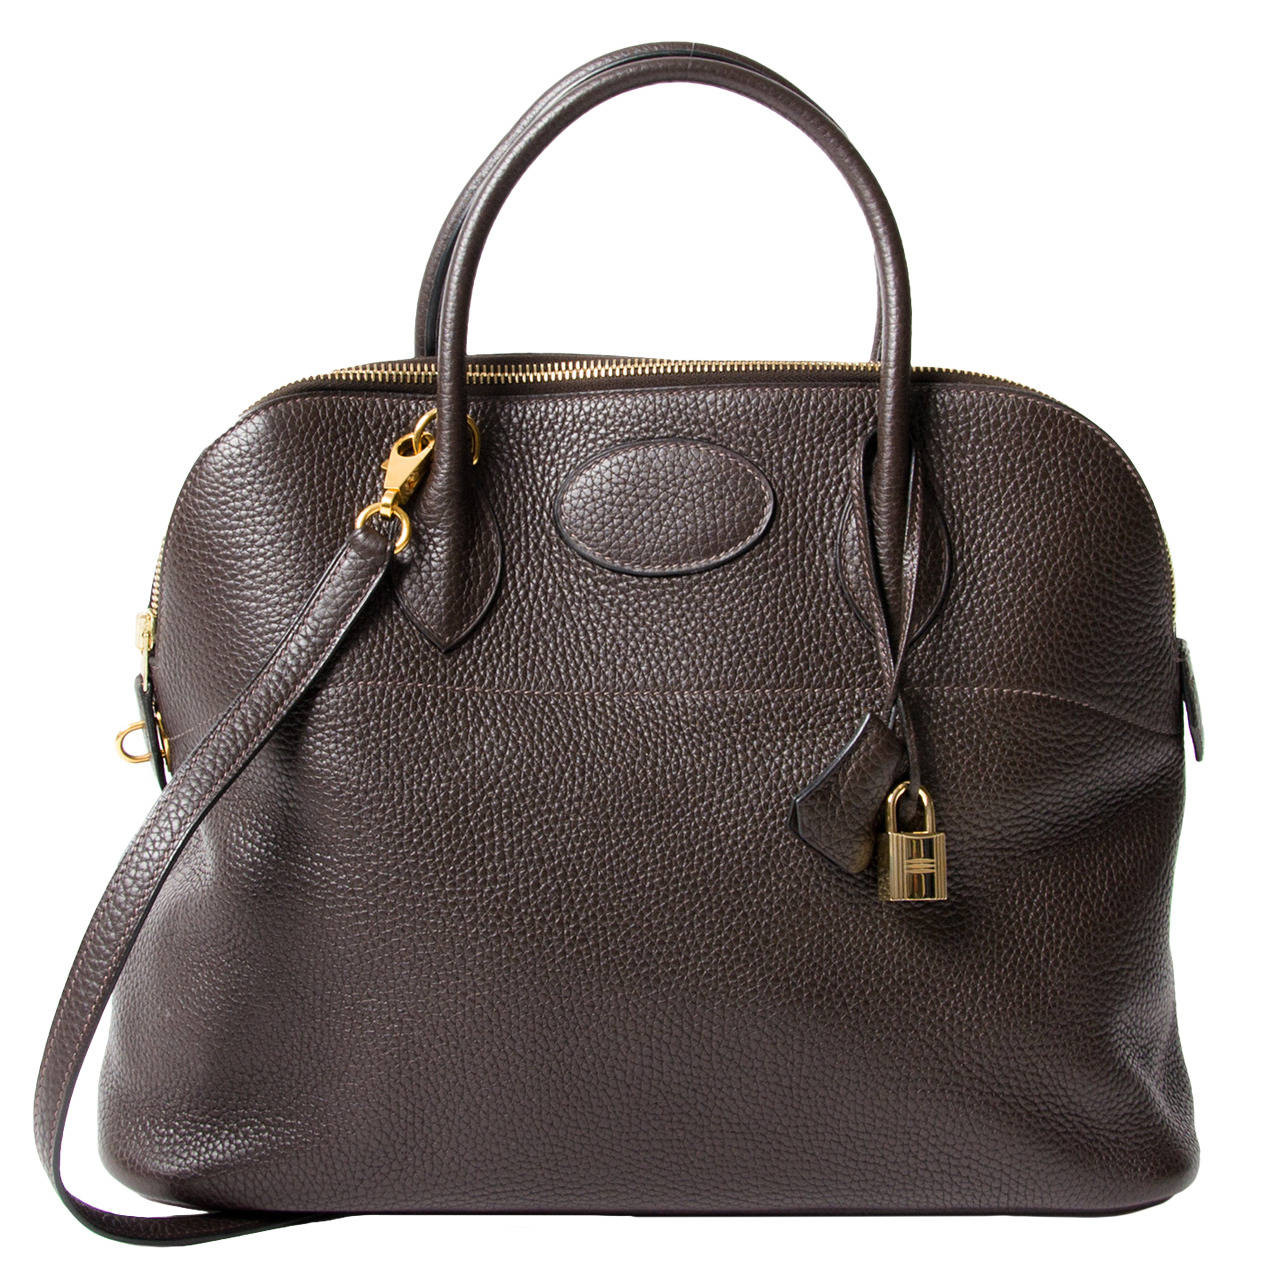 discount hermes bag - Herm��s Bolide 35 Chocolat Brown Clemence at 1stdibs